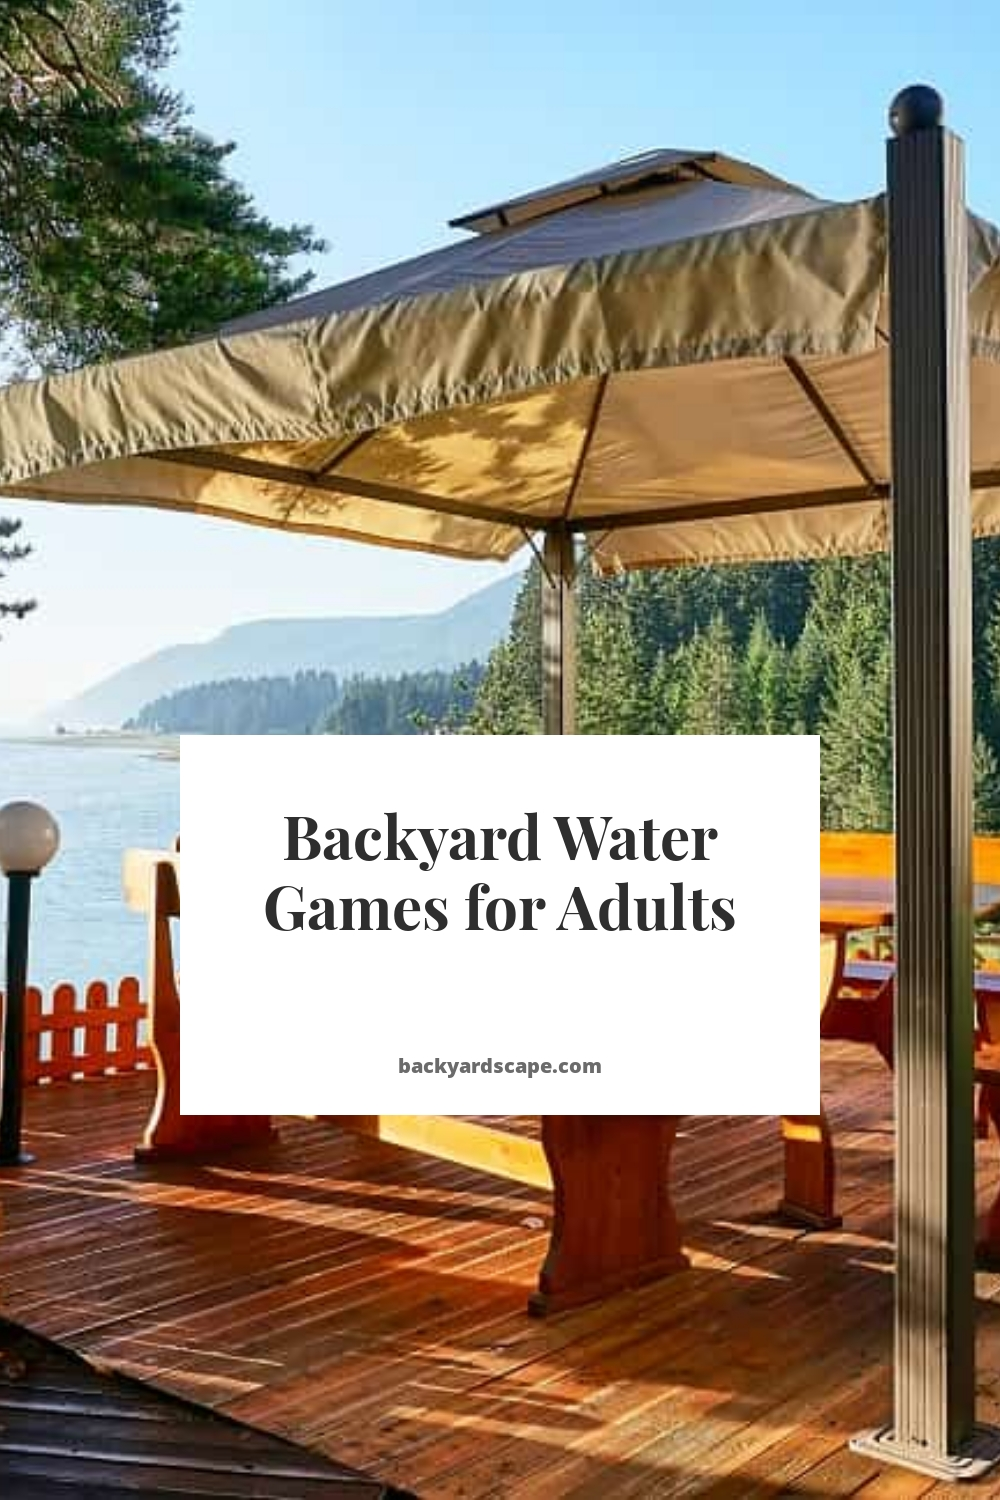 Backyard Water Games for Adults